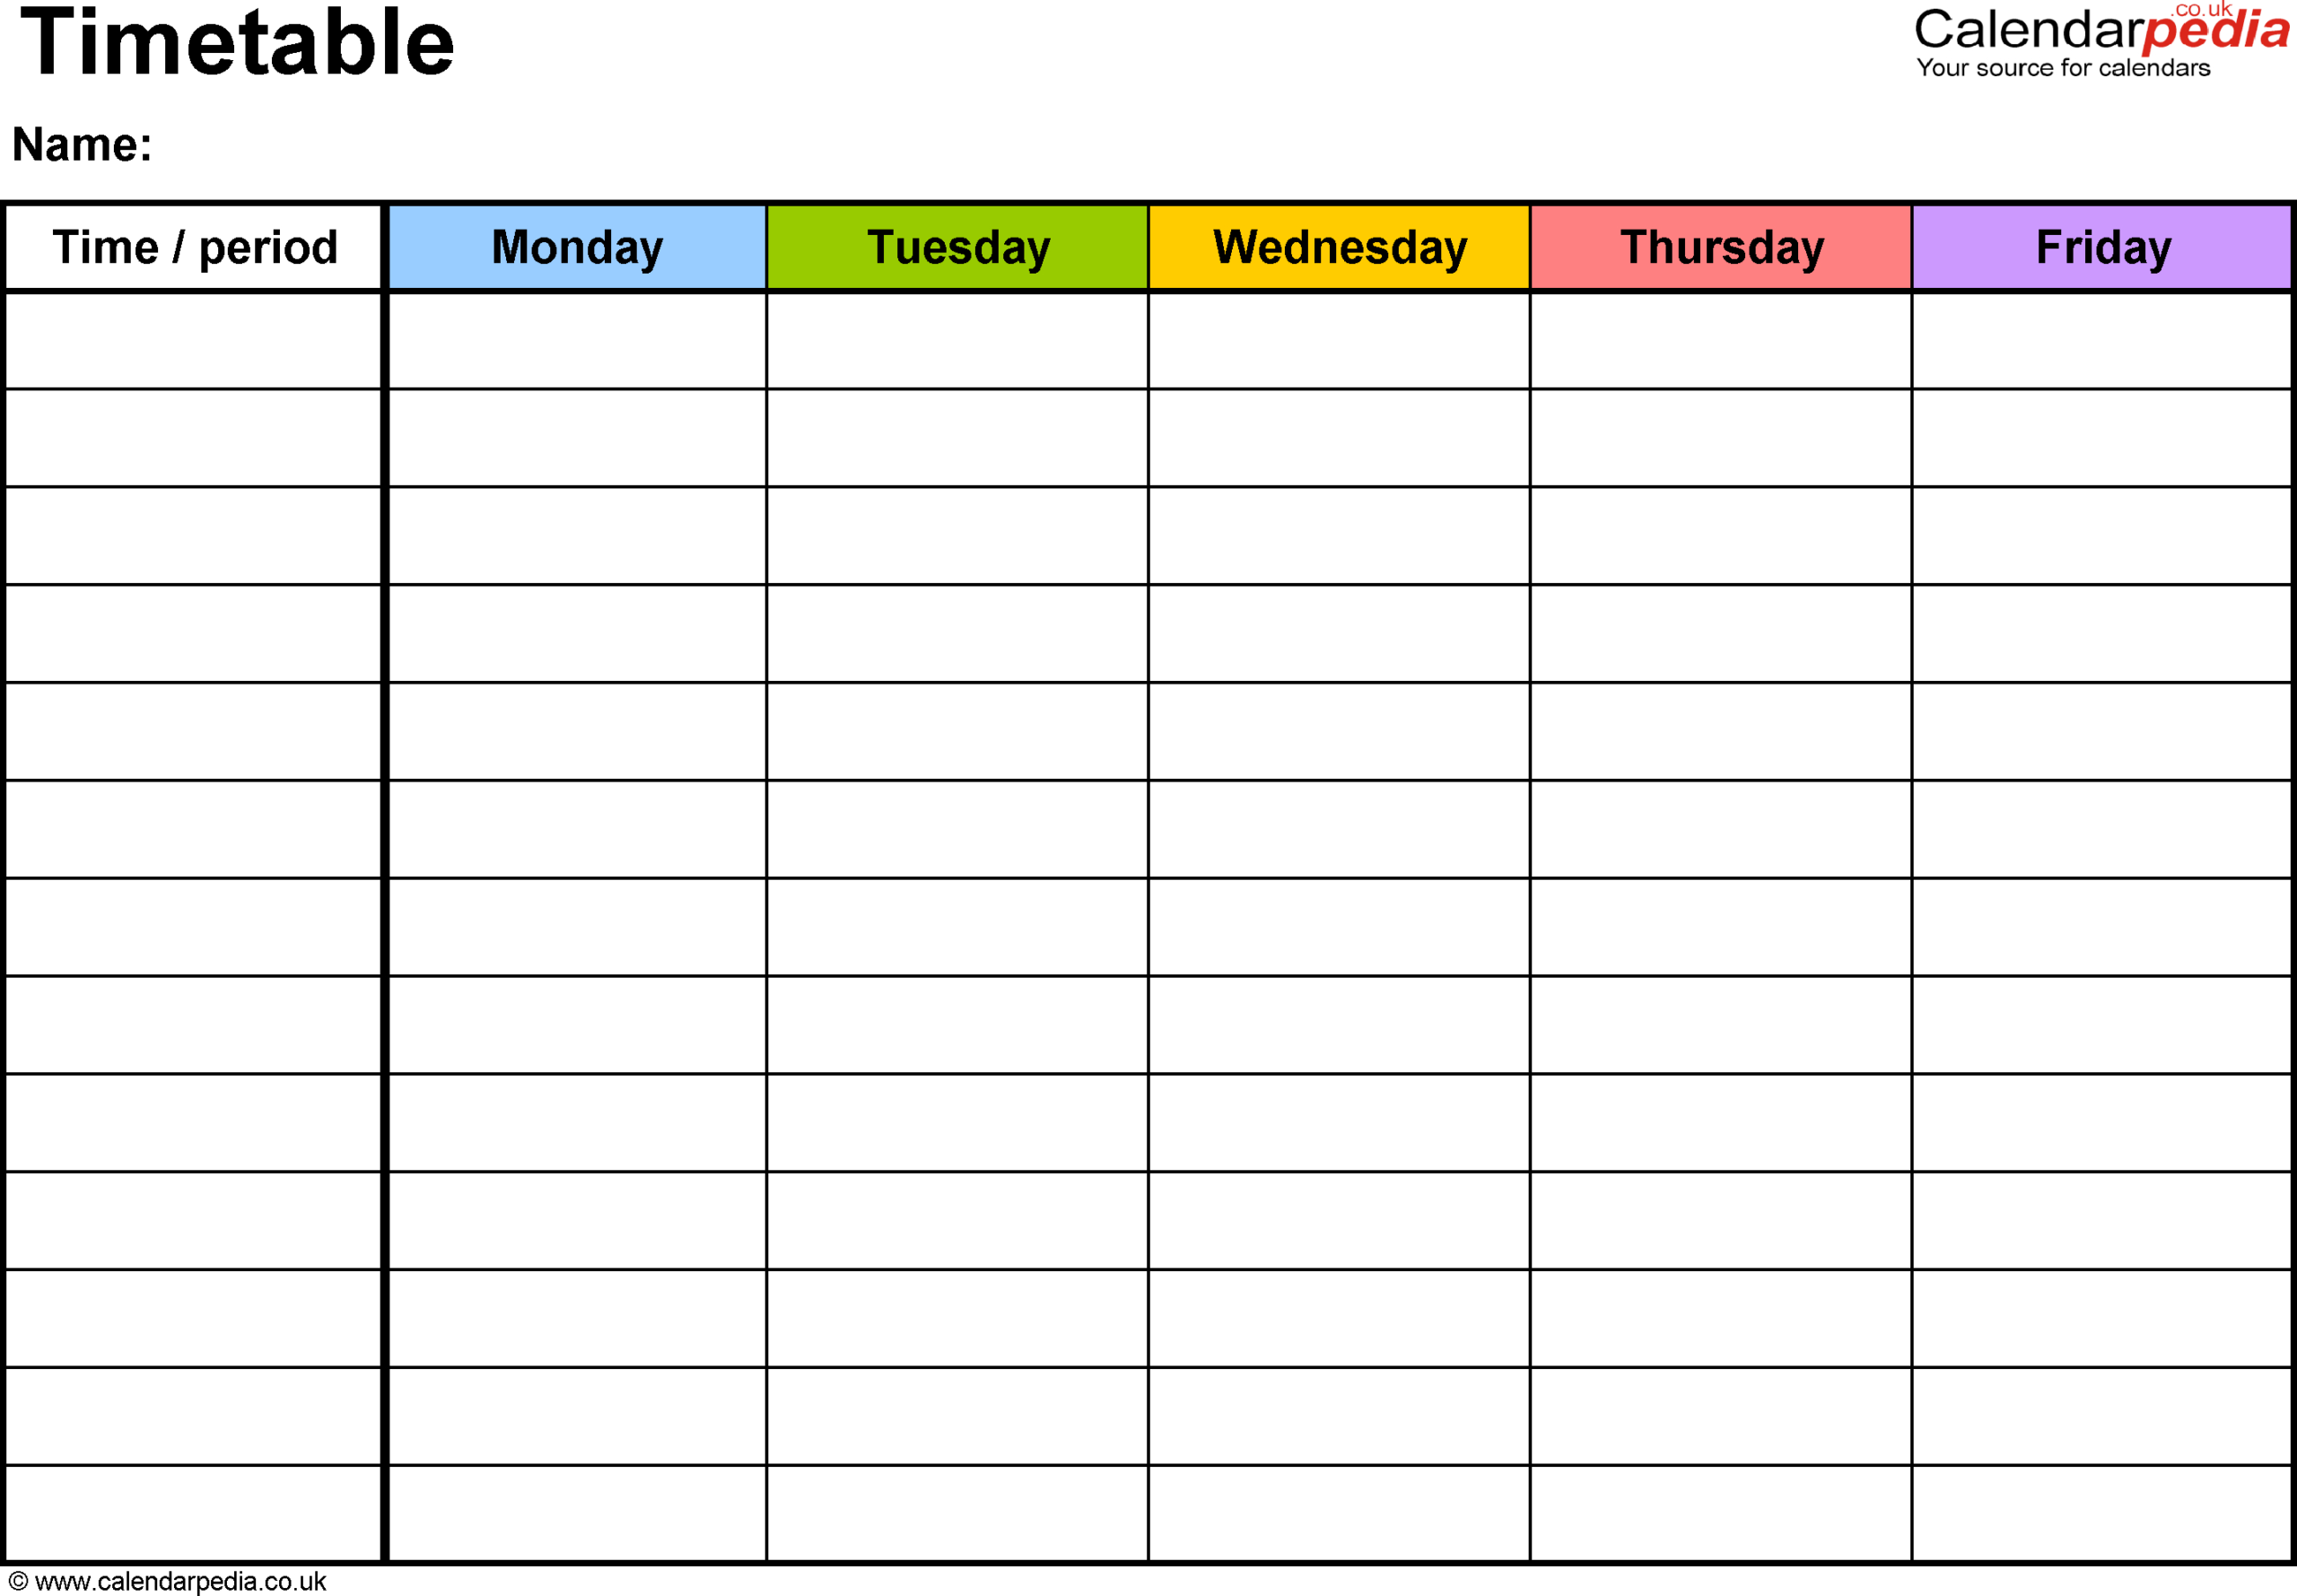 Pdf Timetable Template 2: Landscape Format, A4, 1 Page within One Week Calendar Template Word